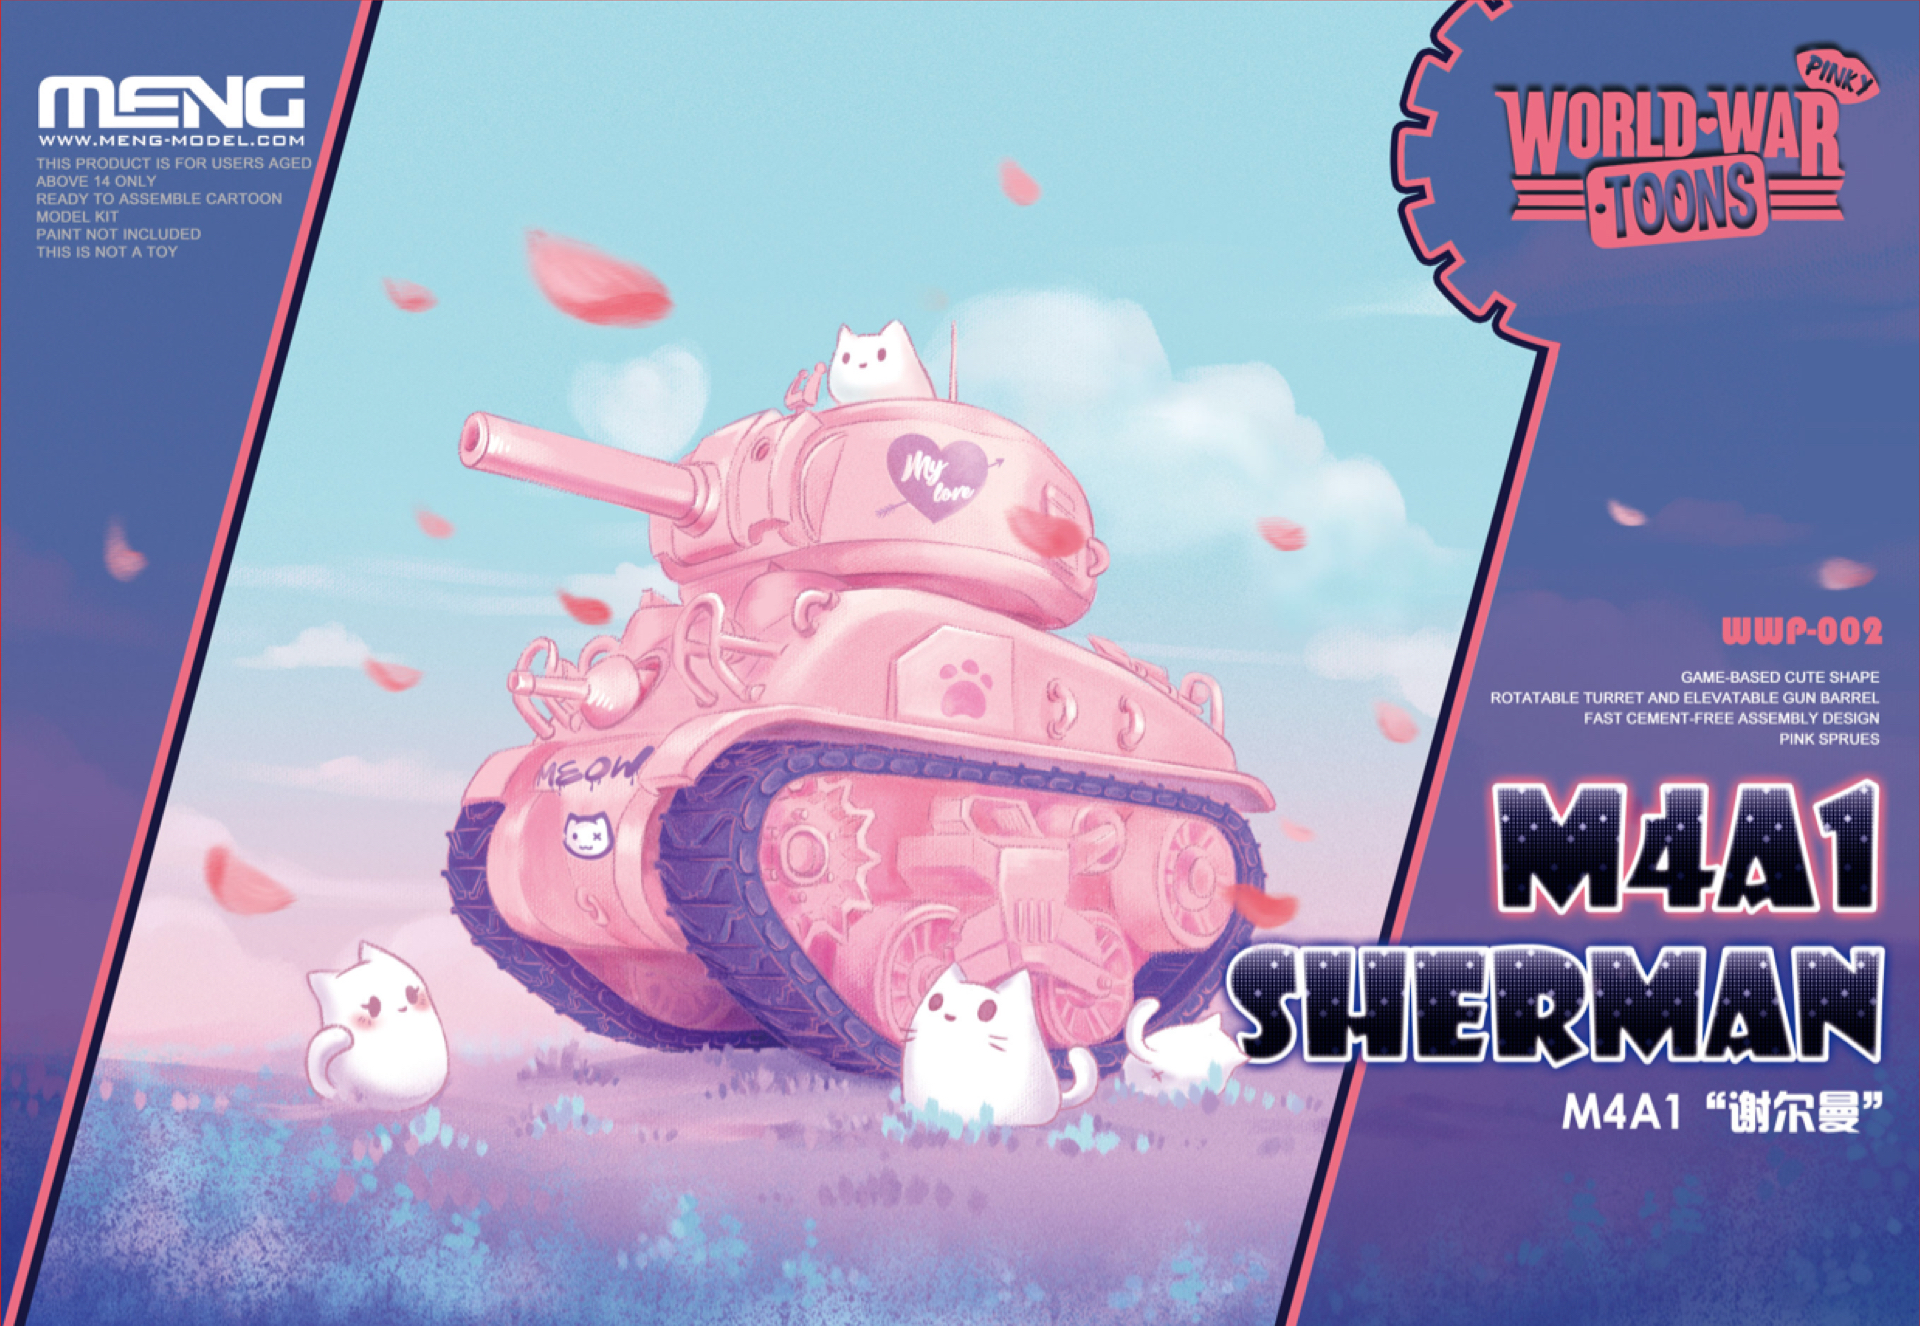 Meng M4A1 Sherman (CARTOON MODEL, PINK COLOR)